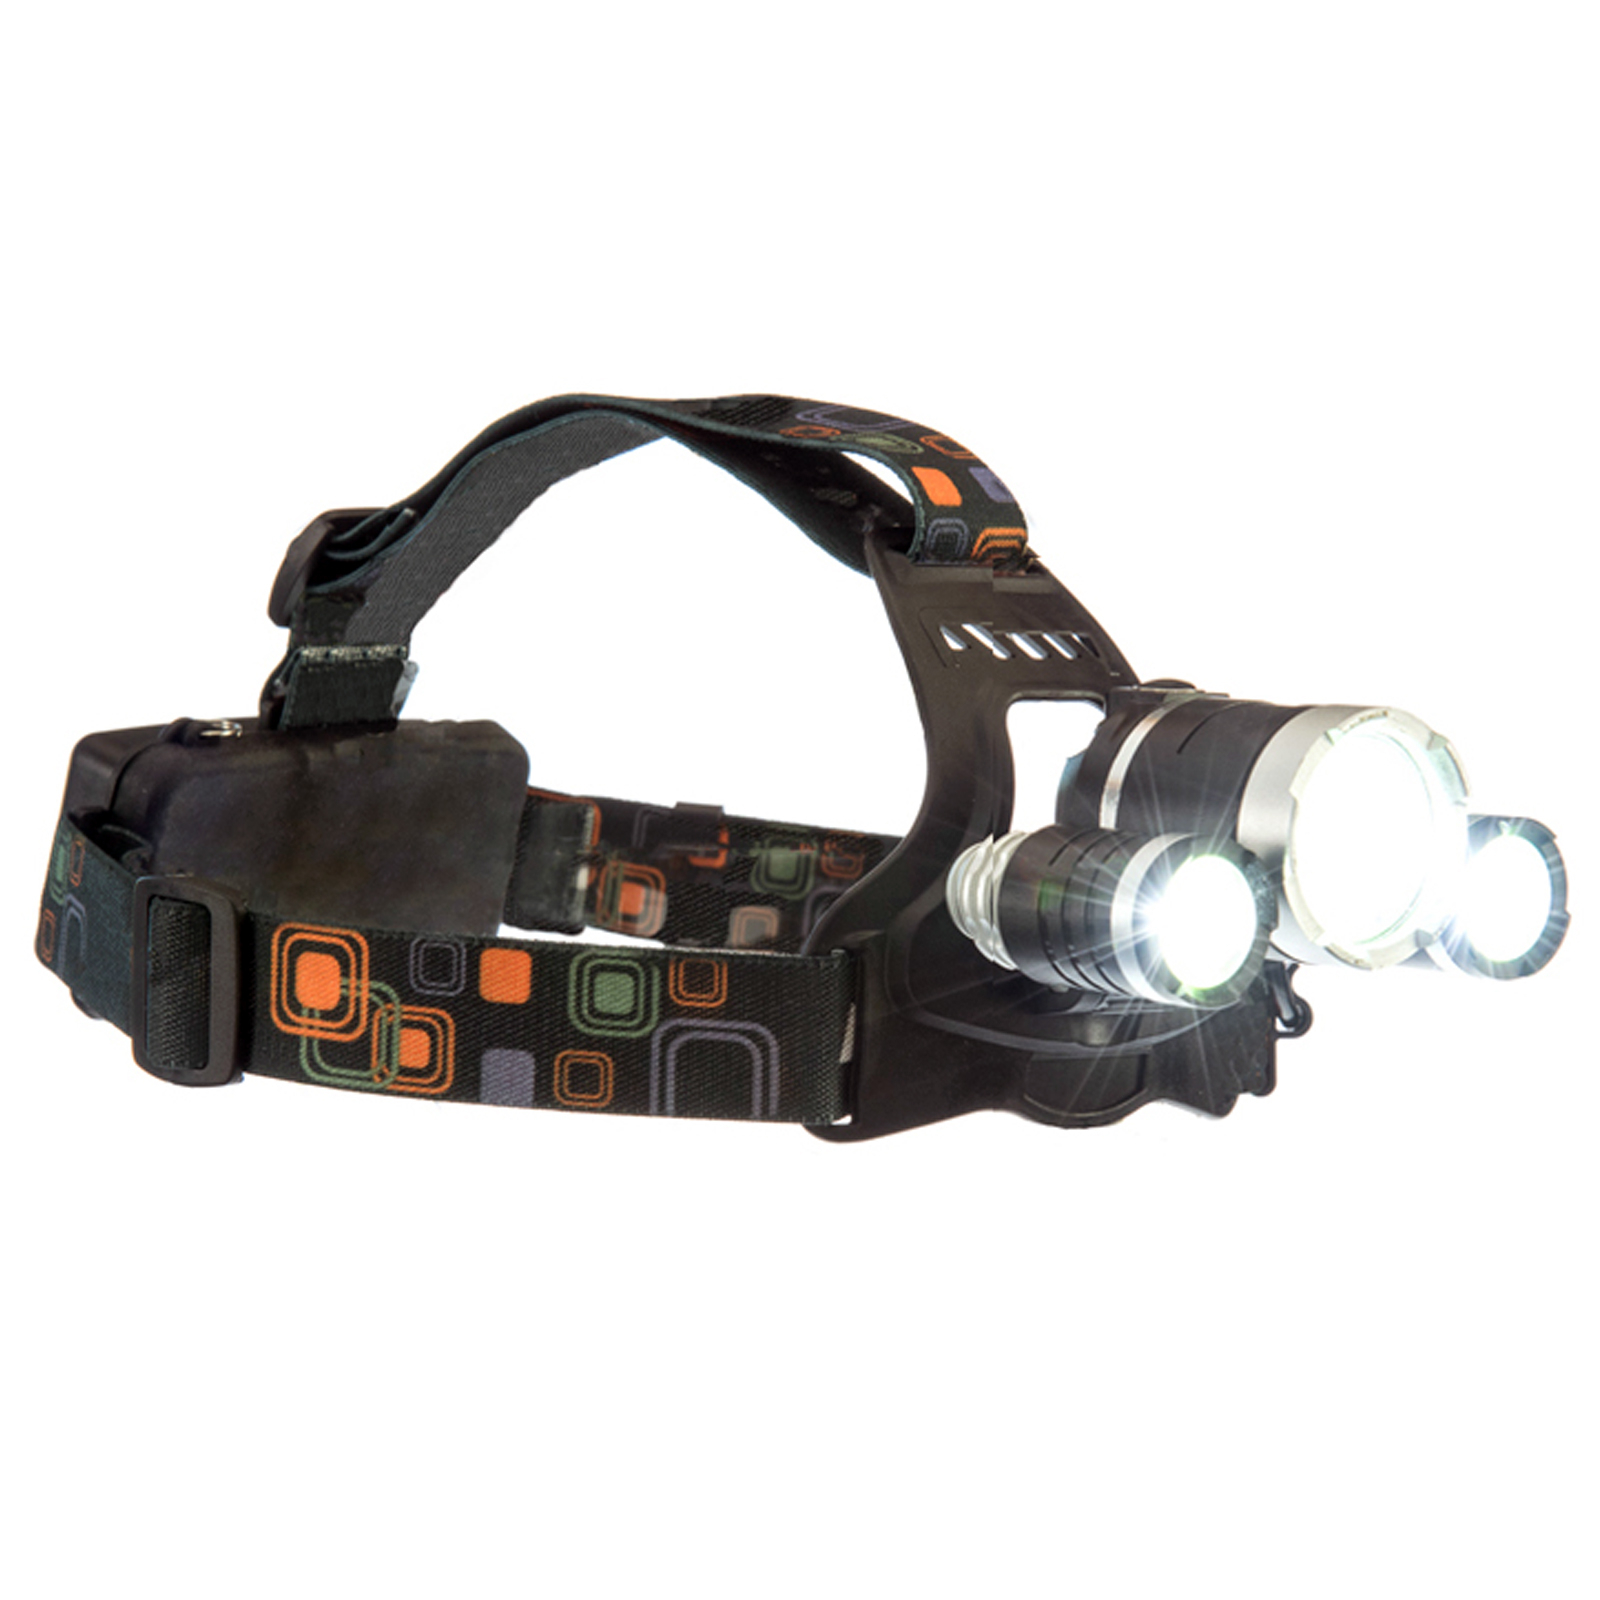 ASR Outdoor Rechargeable Adjustable 2250 Lumen LED Headlamp Four-Stage Switch